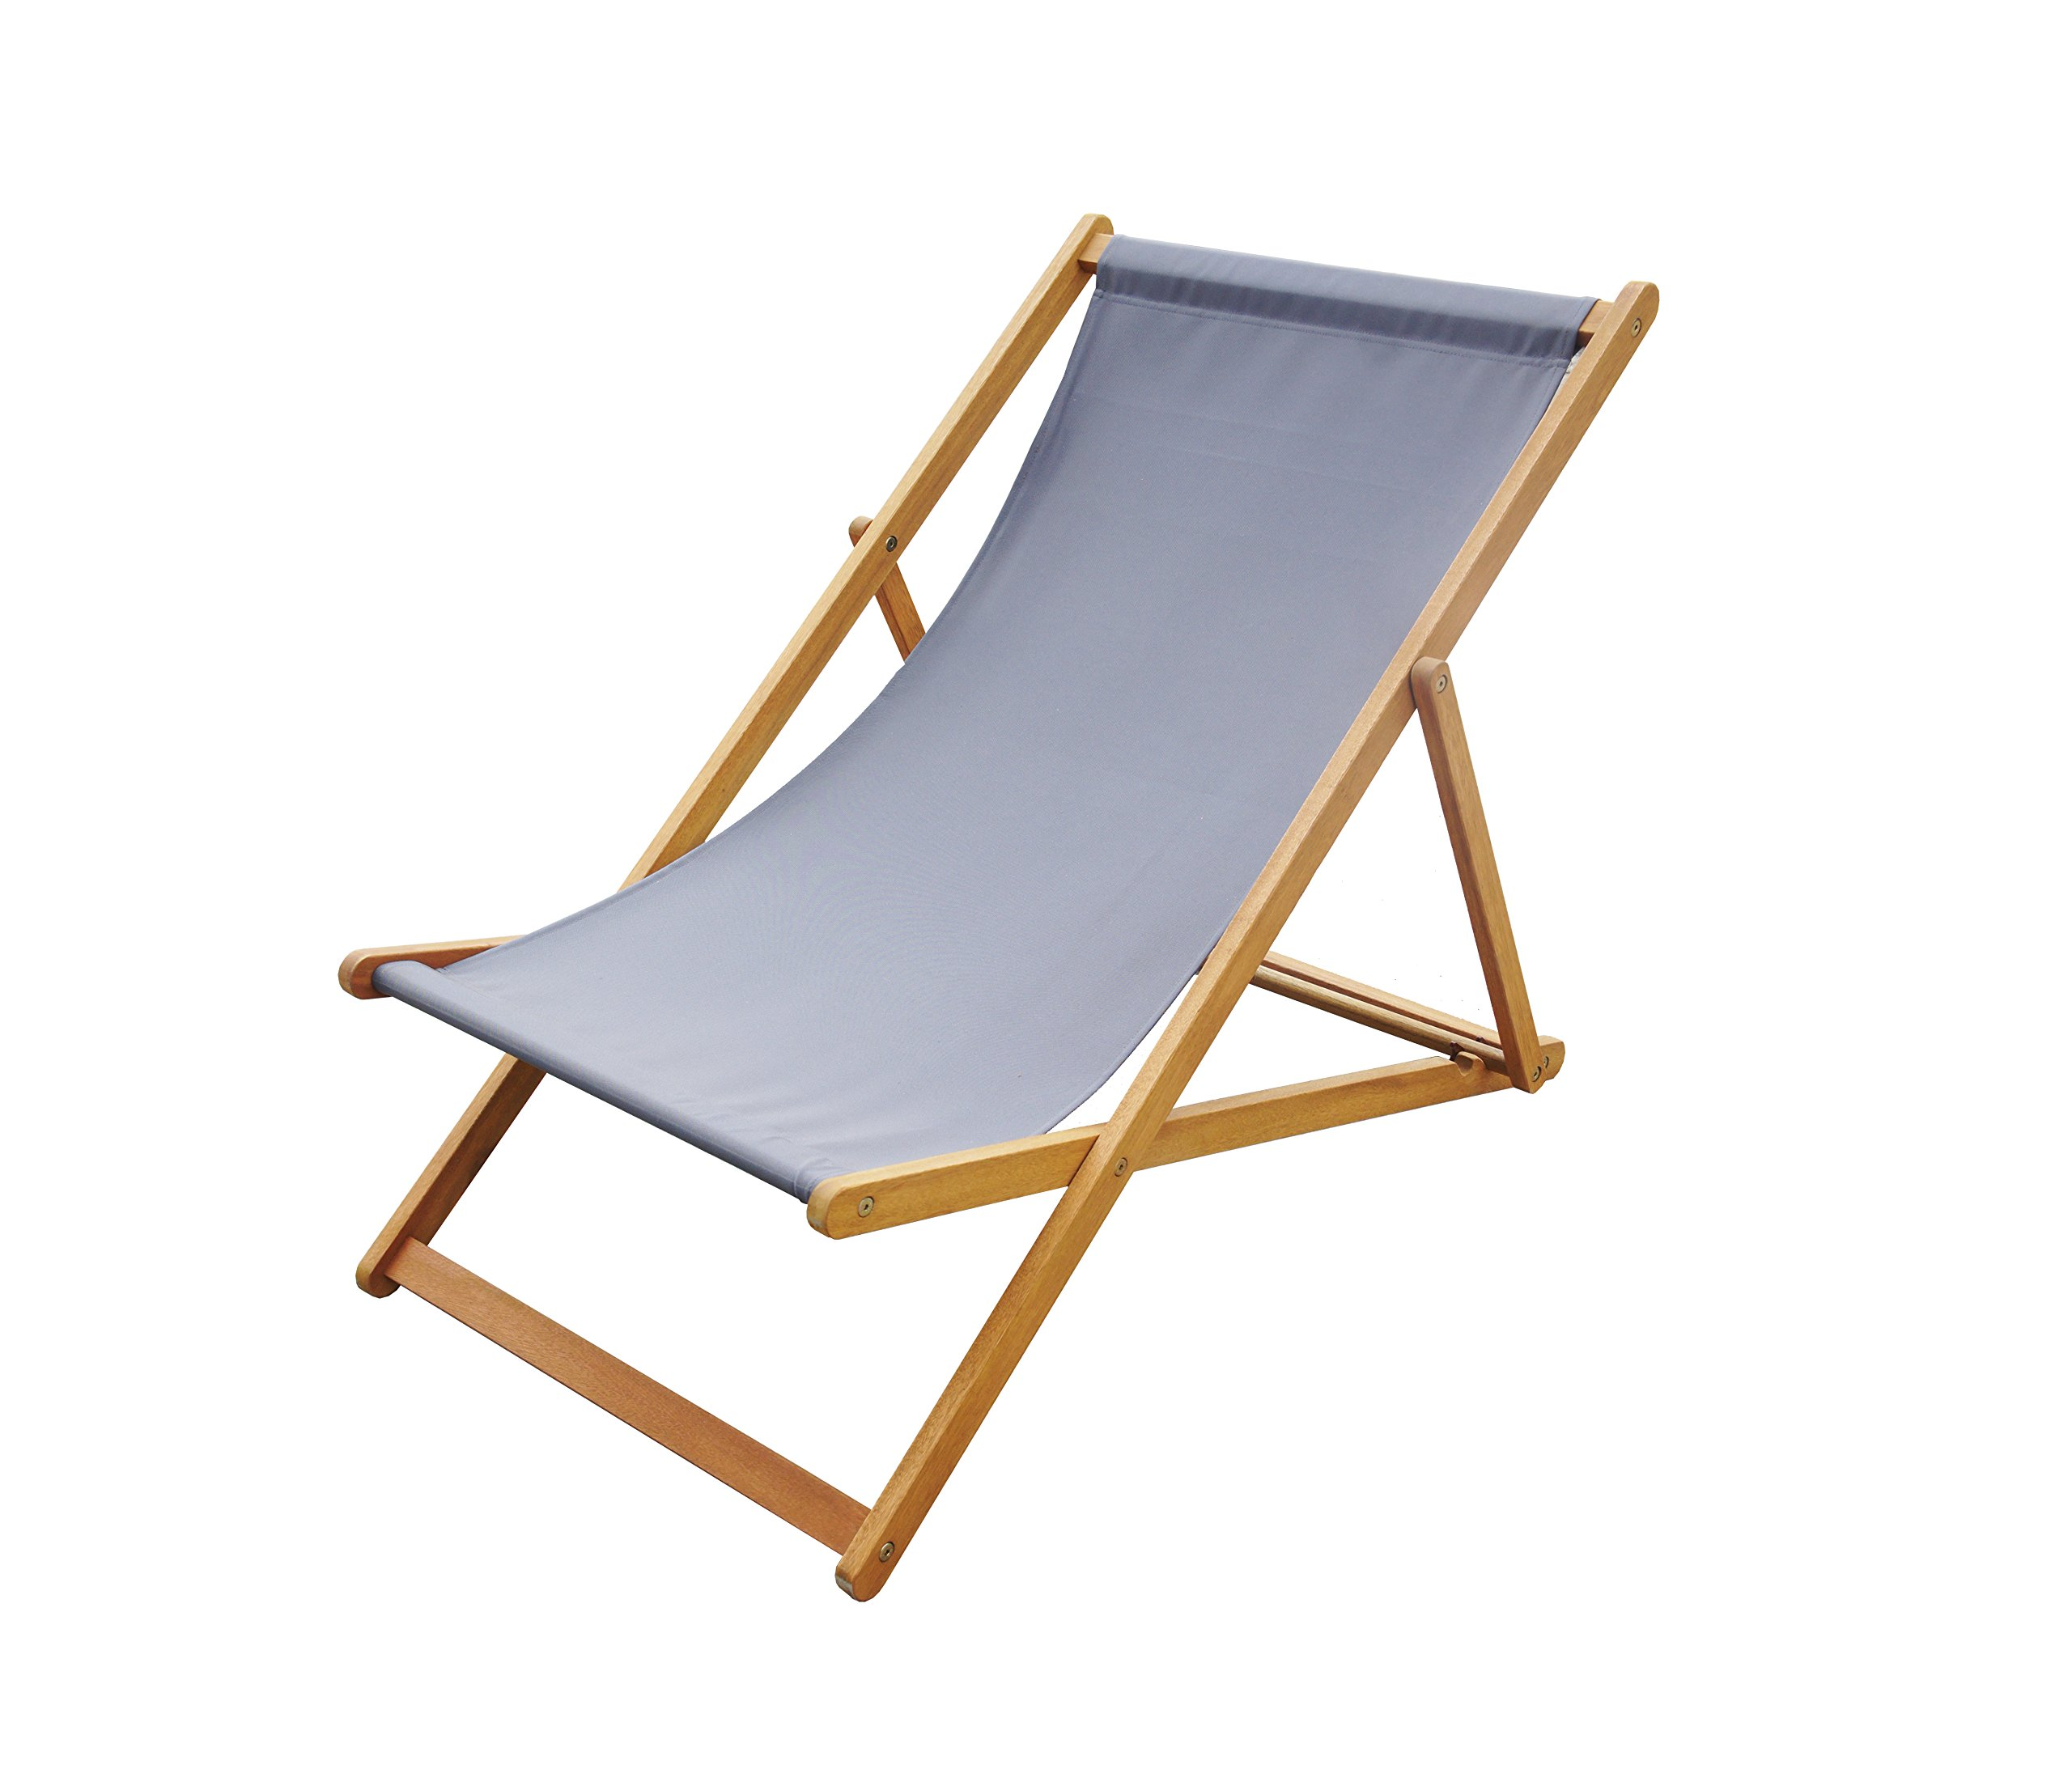 Amayo Home Solid Eucalyptus Wood Foldable Sling Chair Garden Seating, Hold 250lbs, Grey Canvas, Adjustable with 3 Reclining Positions. No Assembly. Comfortably Relax Chair in Garden Porch Pool by by Amayo Home (Image #3)